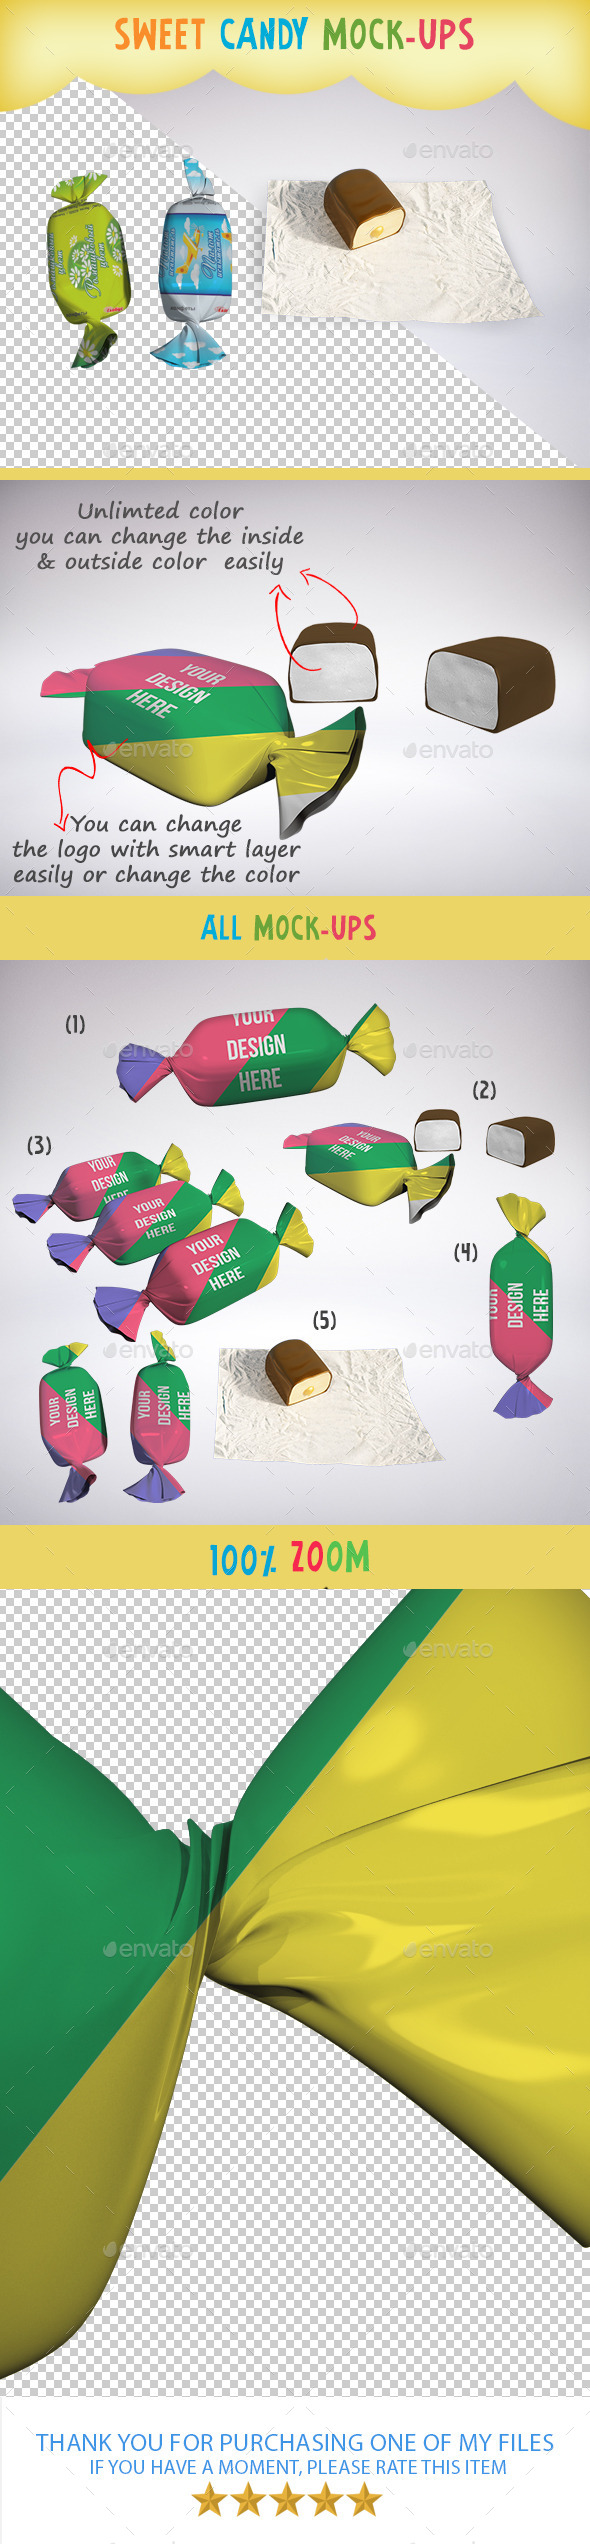 Sweet Candy Mock-Ups